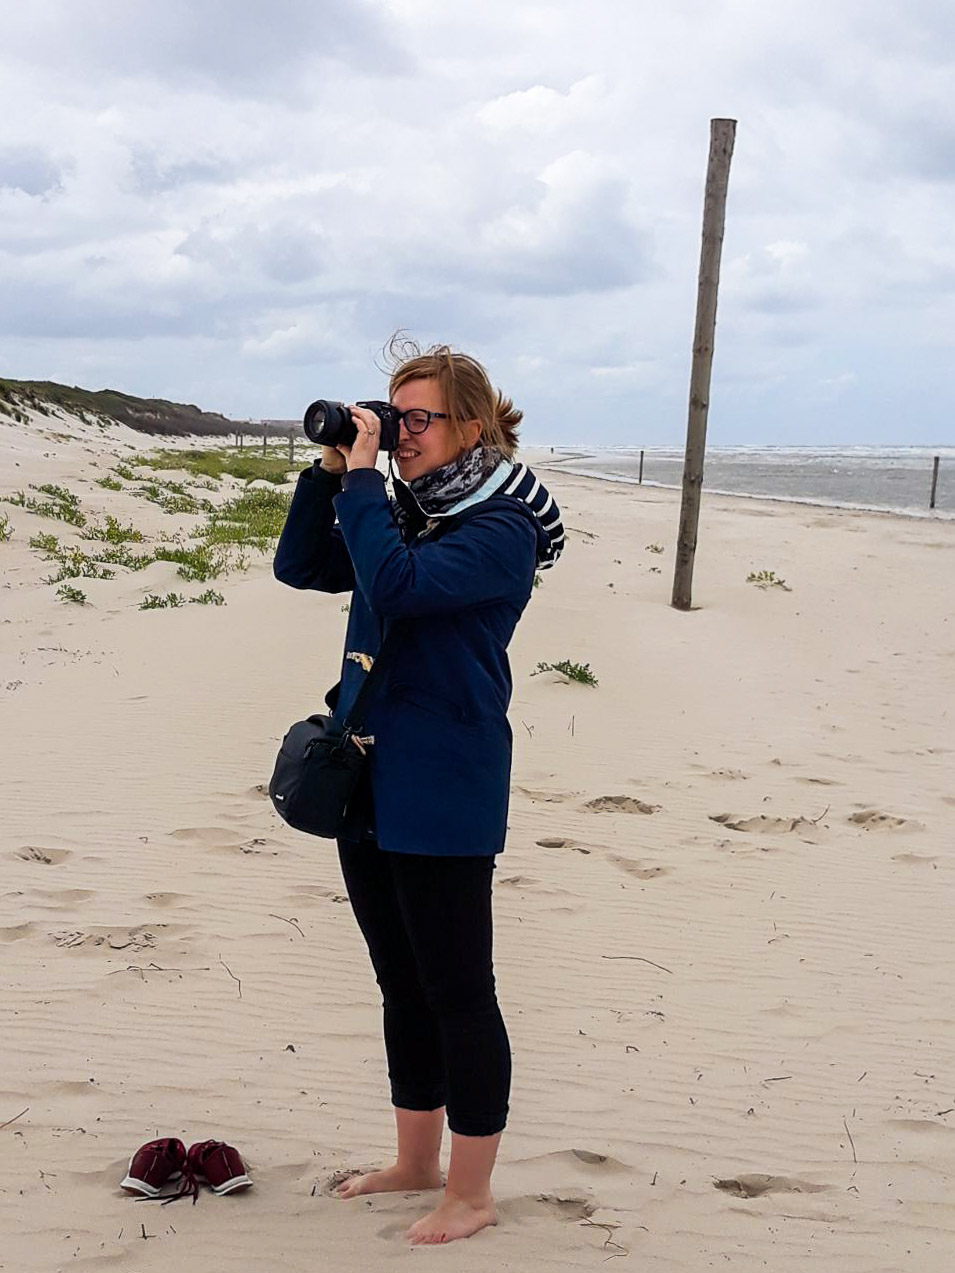 Dr. Johanna Harthe: in addition to being an outstanding astronomer, she is also an avid photographer, pianist and singer.